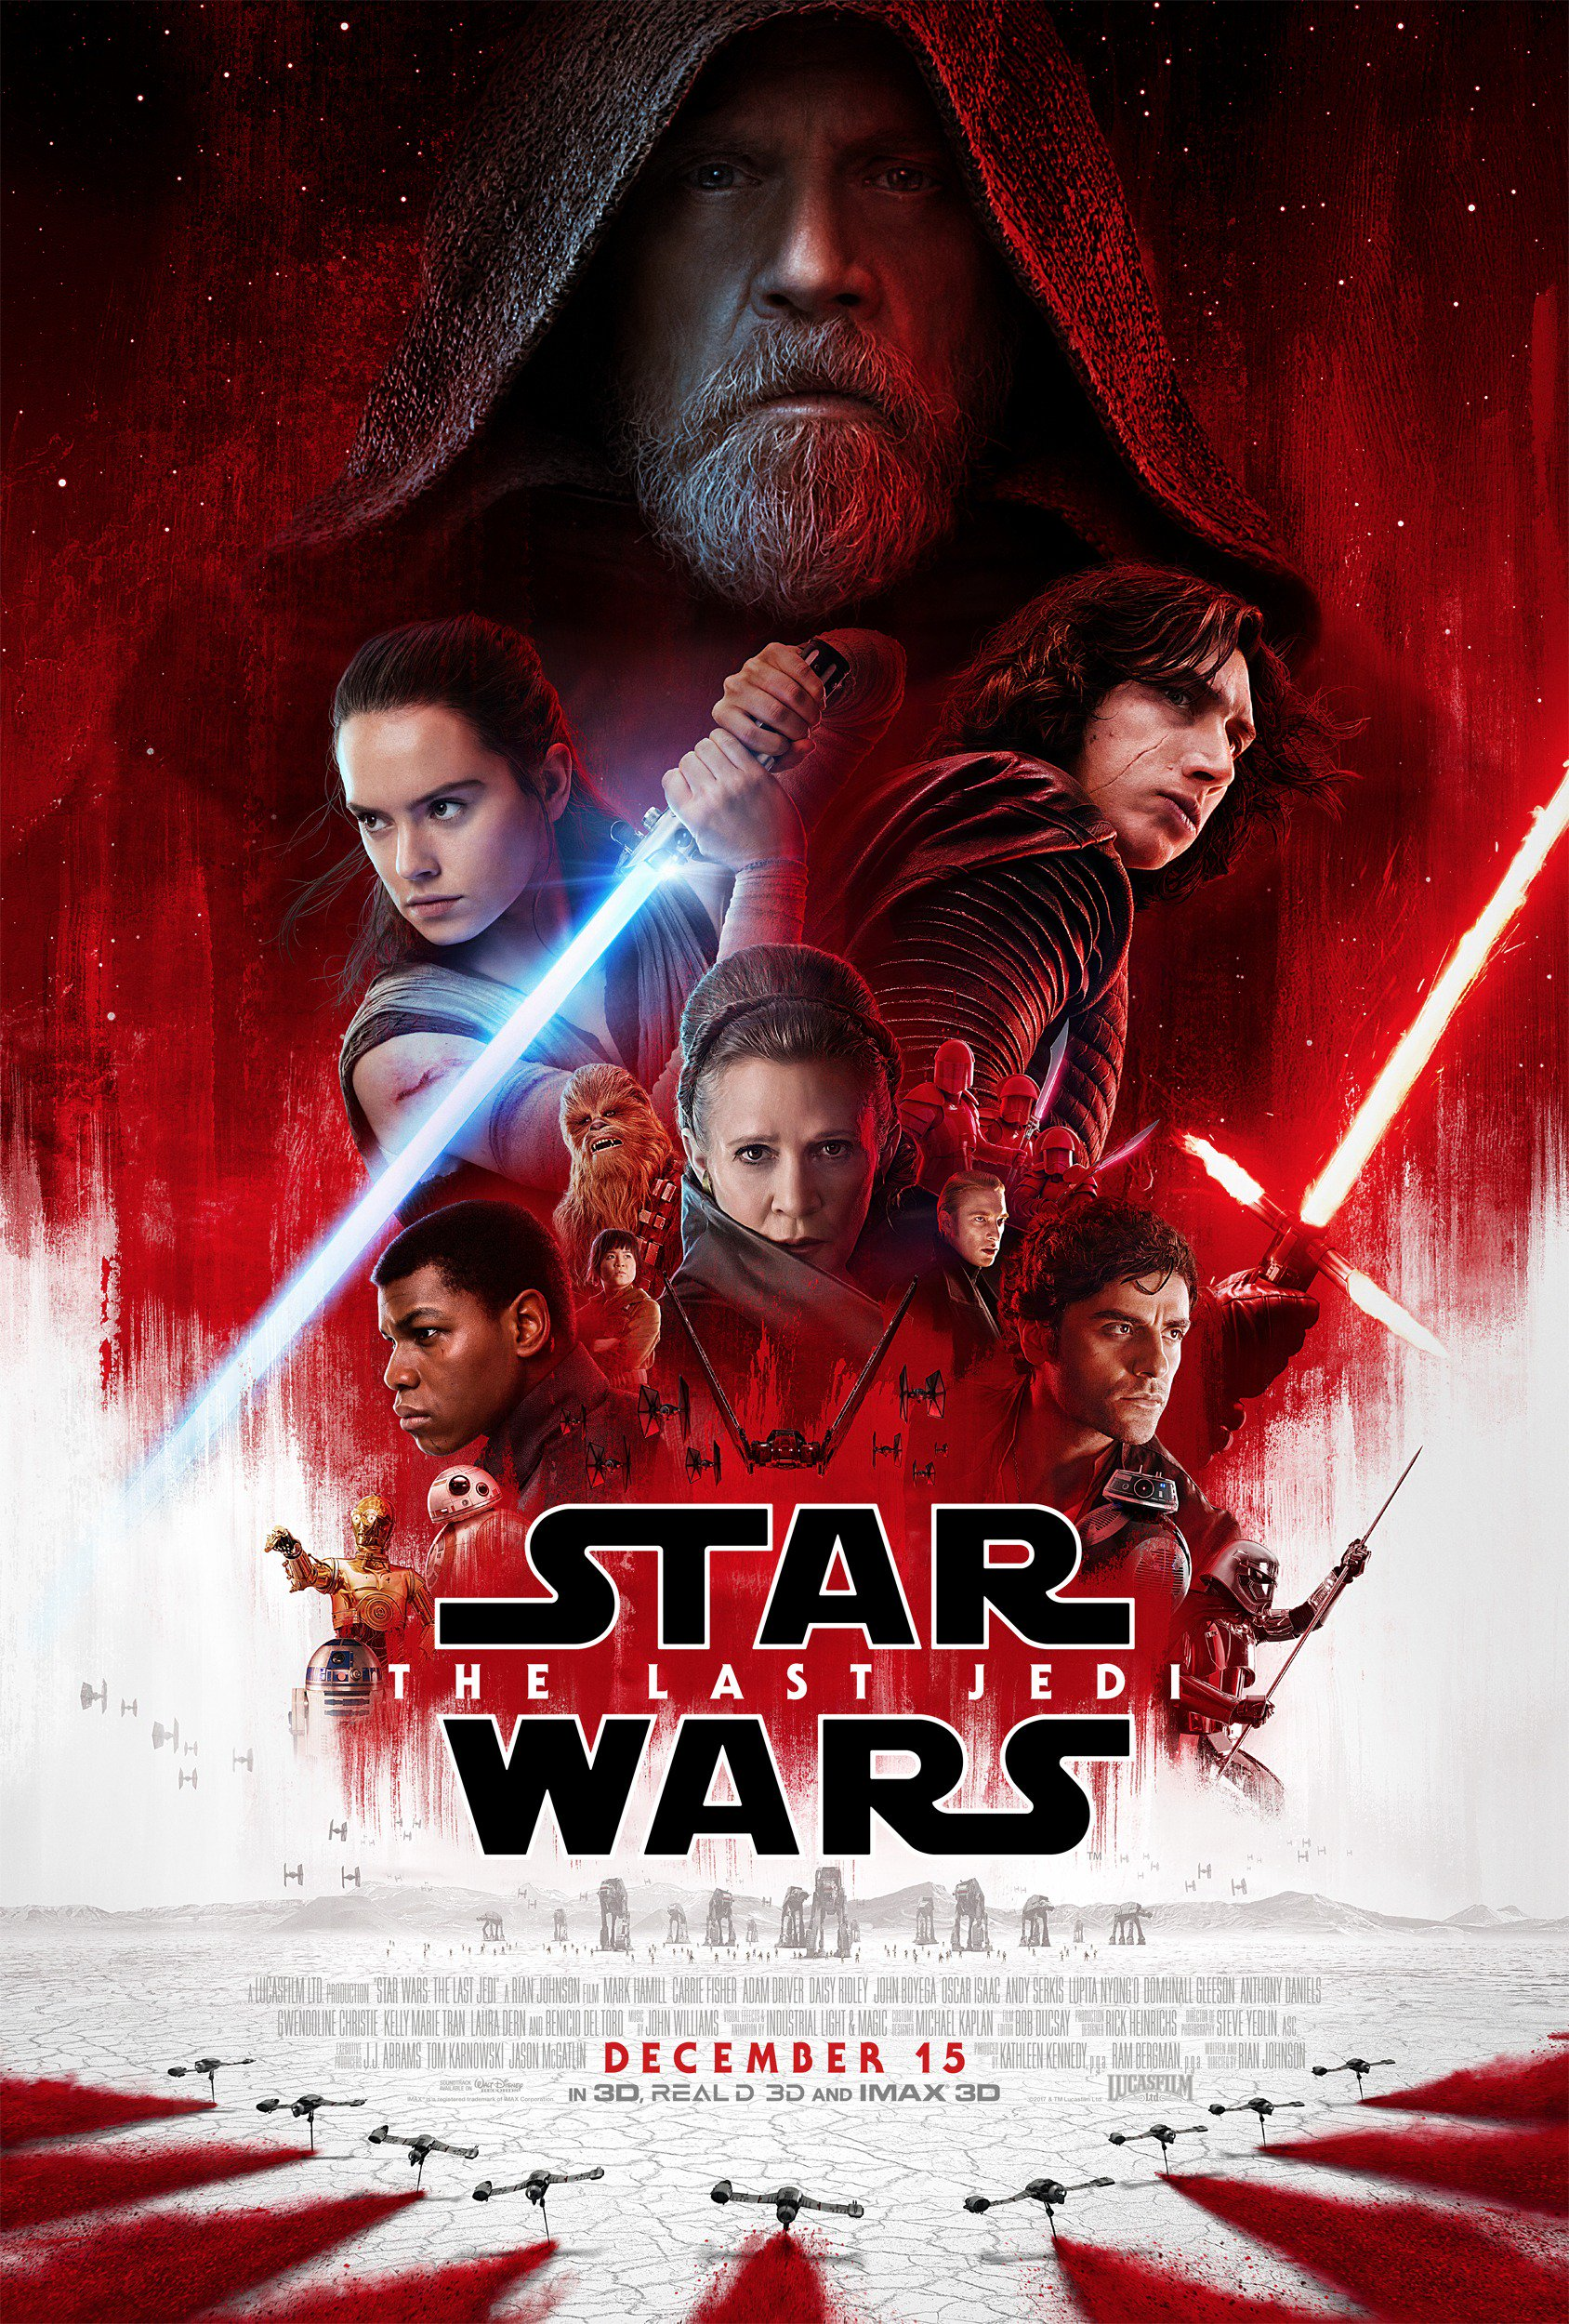 Star Wars Poster 70 Printable Posters Free Download